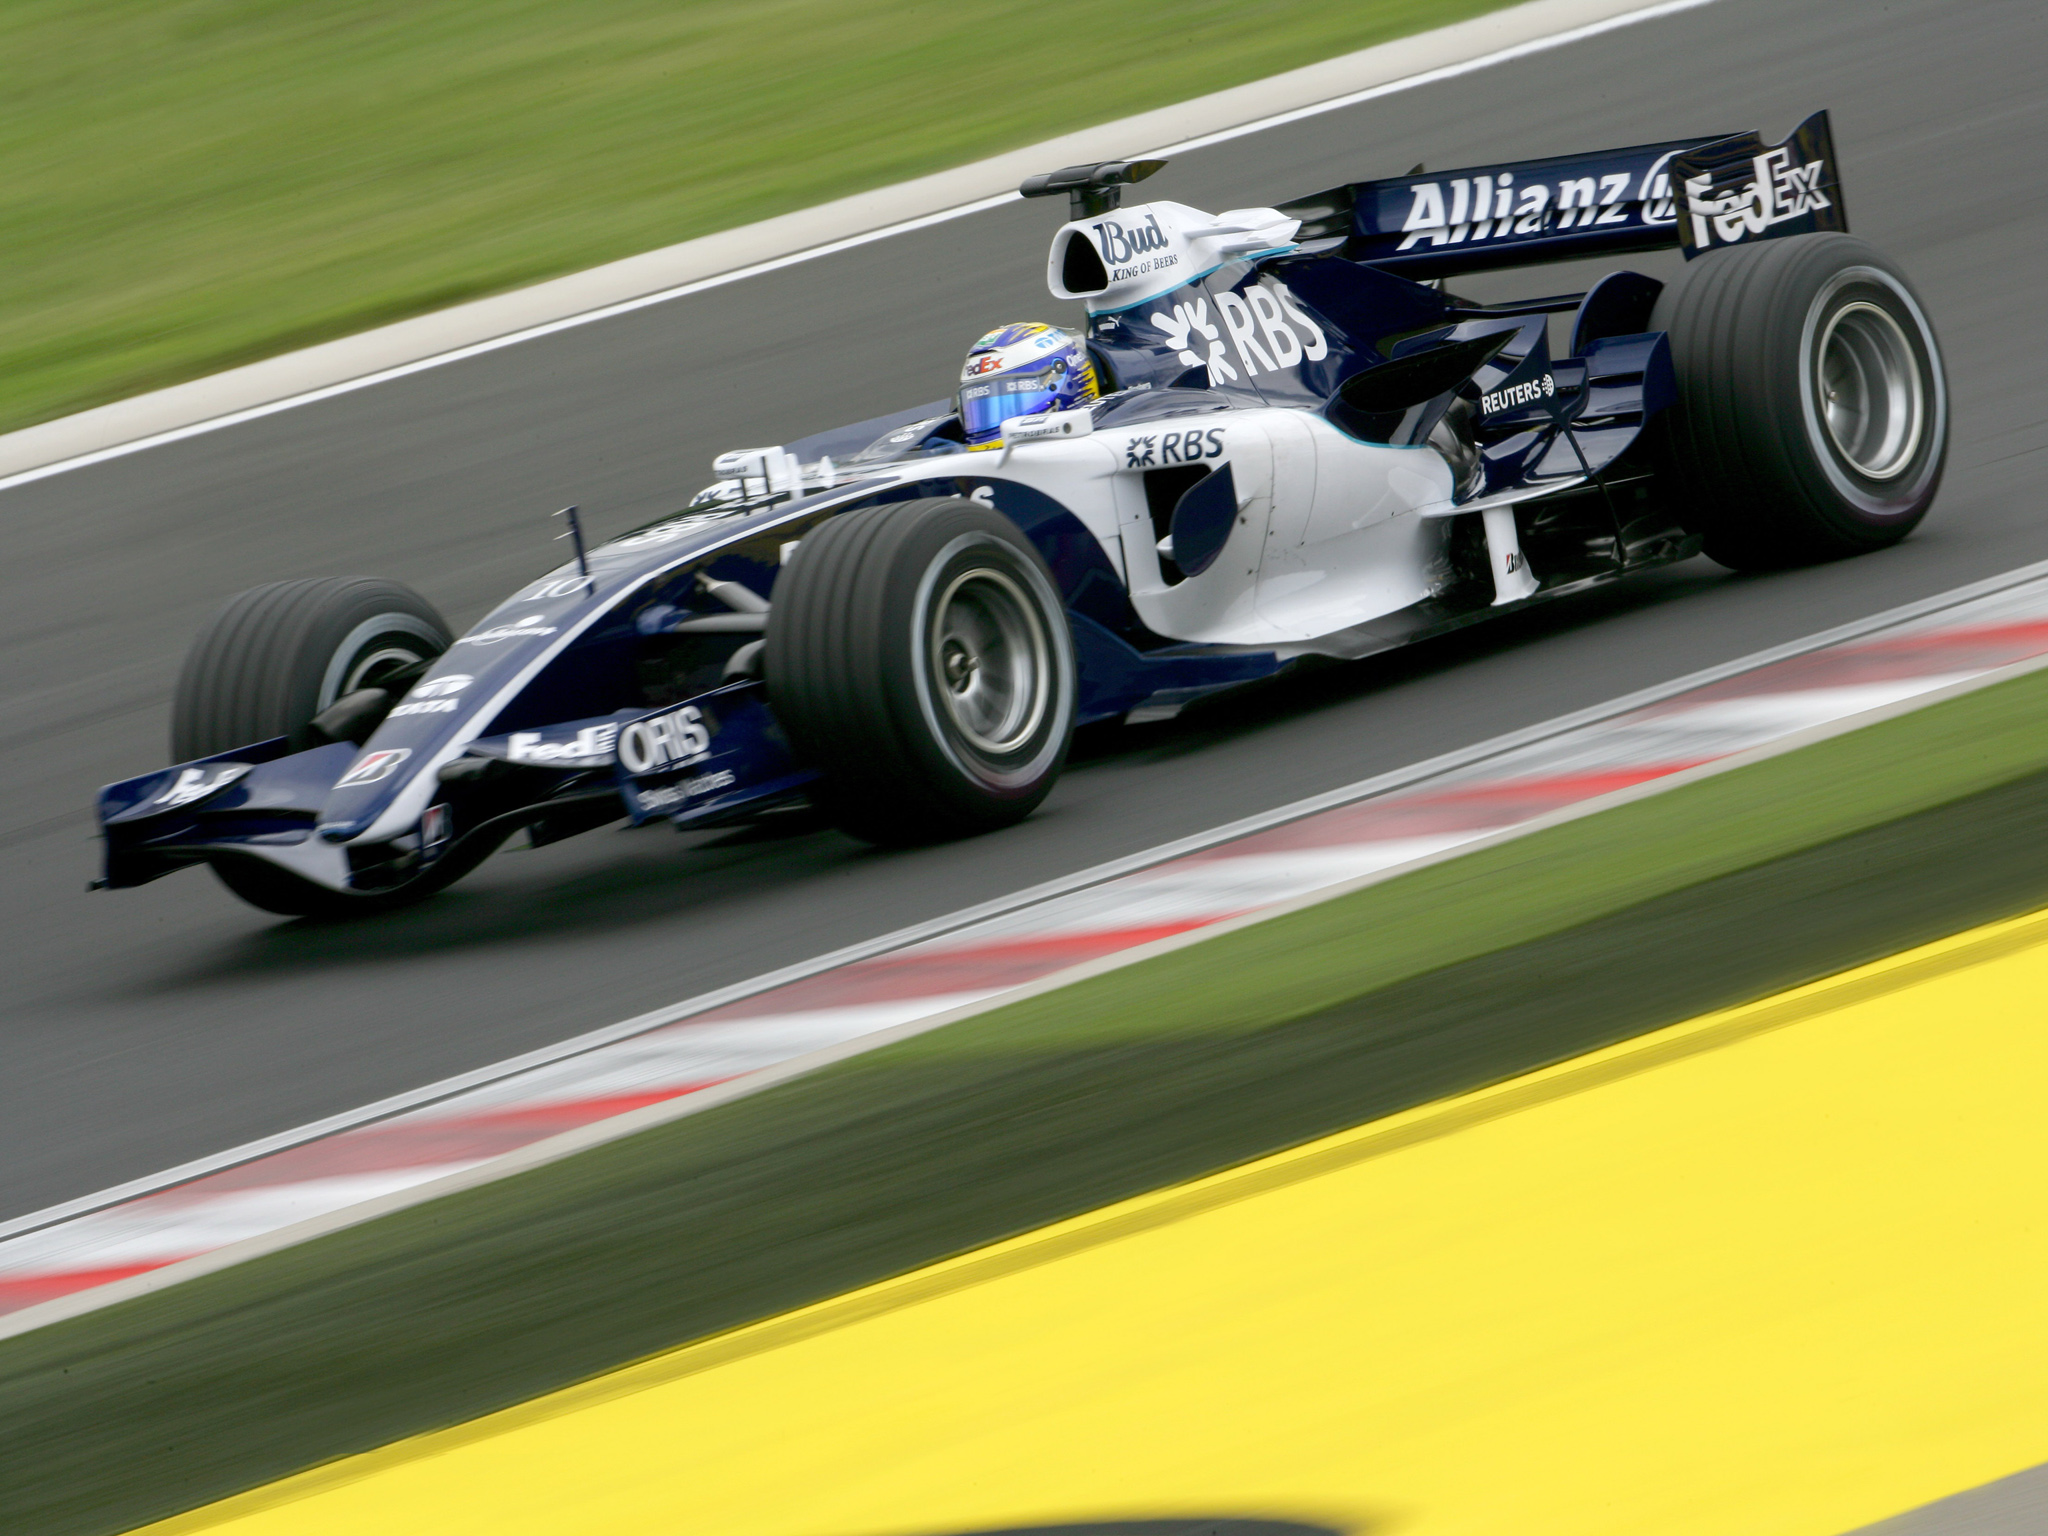 Williams fw28 photo - 10